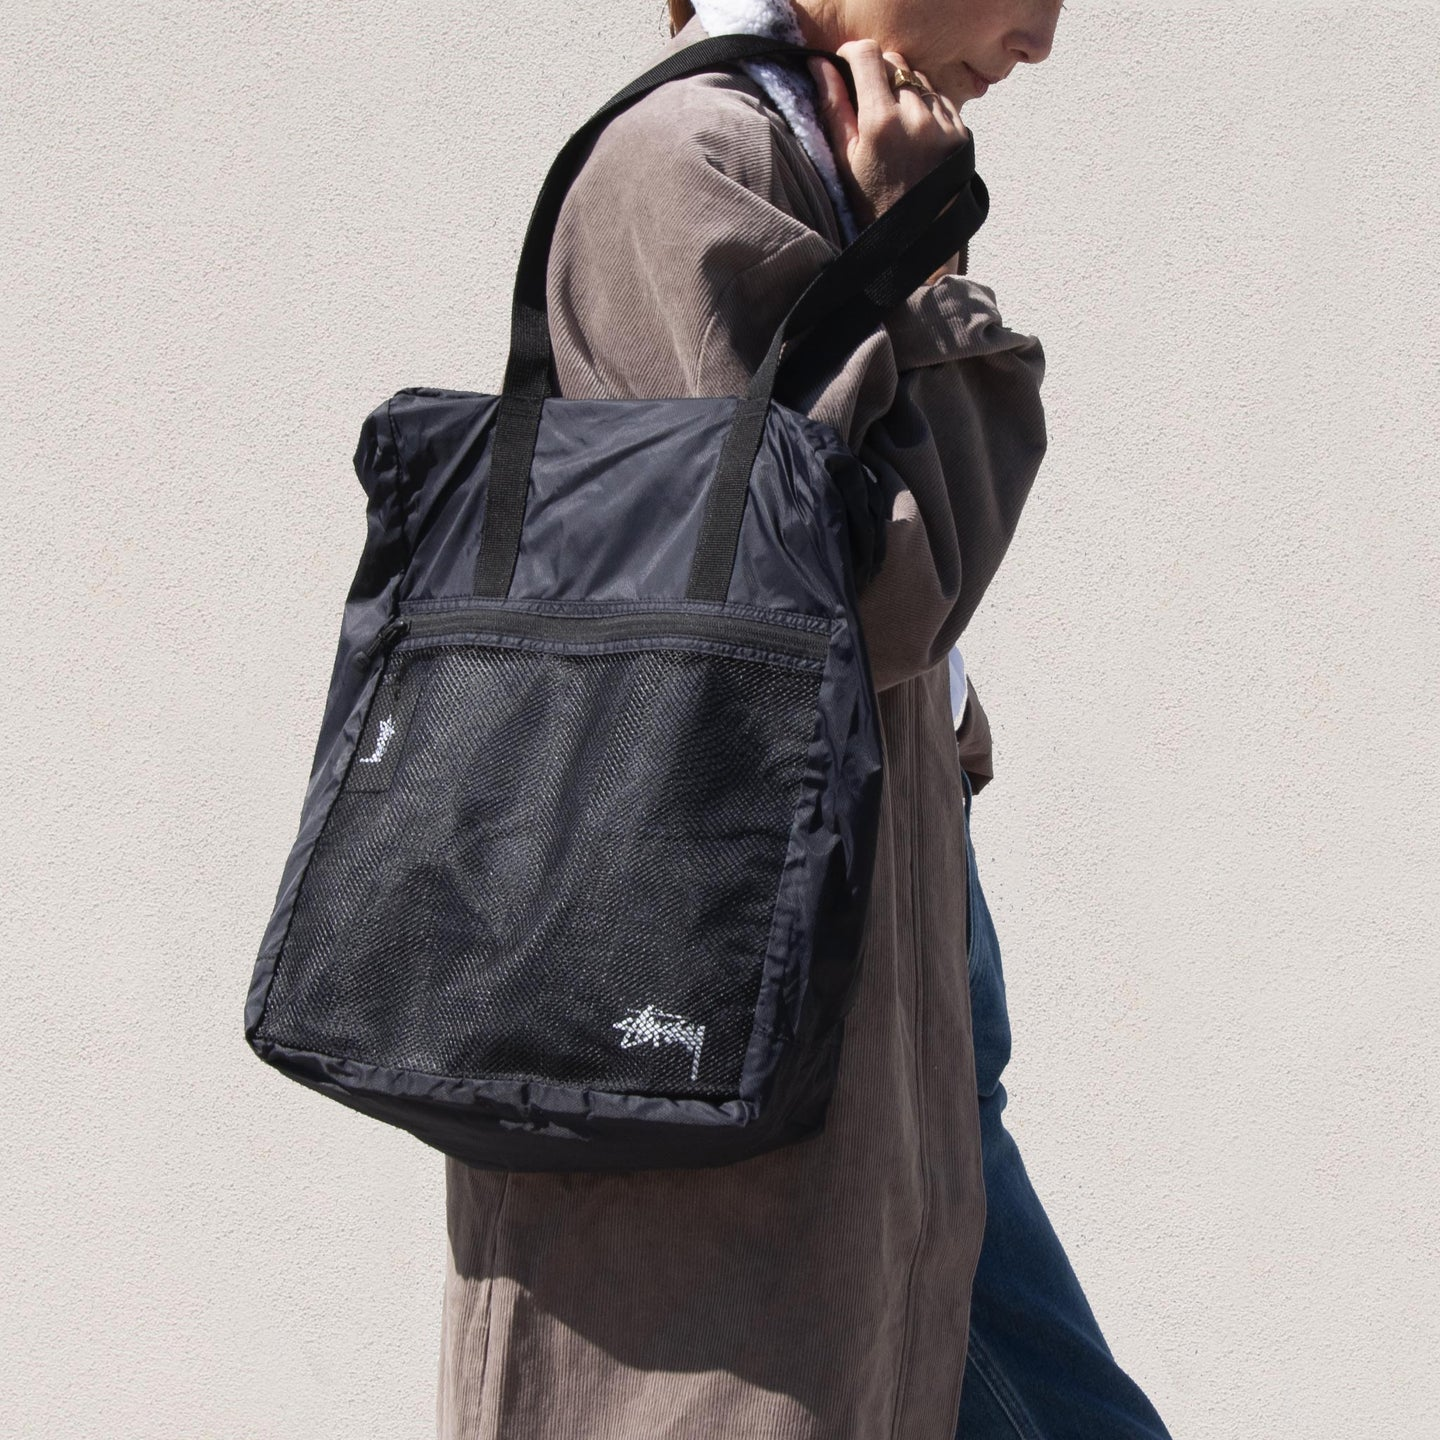 Stussy - Light Weight Travel Tote, available at LCD.